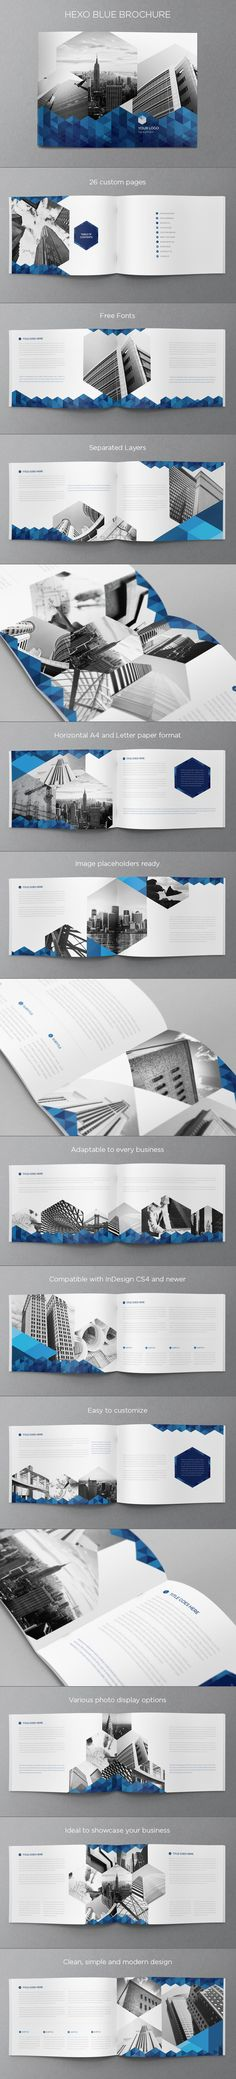 Real Estate Blue Hexo Brochure. Download here: http://graphicriver.net/item/real-estate-blue-hexo-brochure/6446056?ref=abradesign #design #brochure